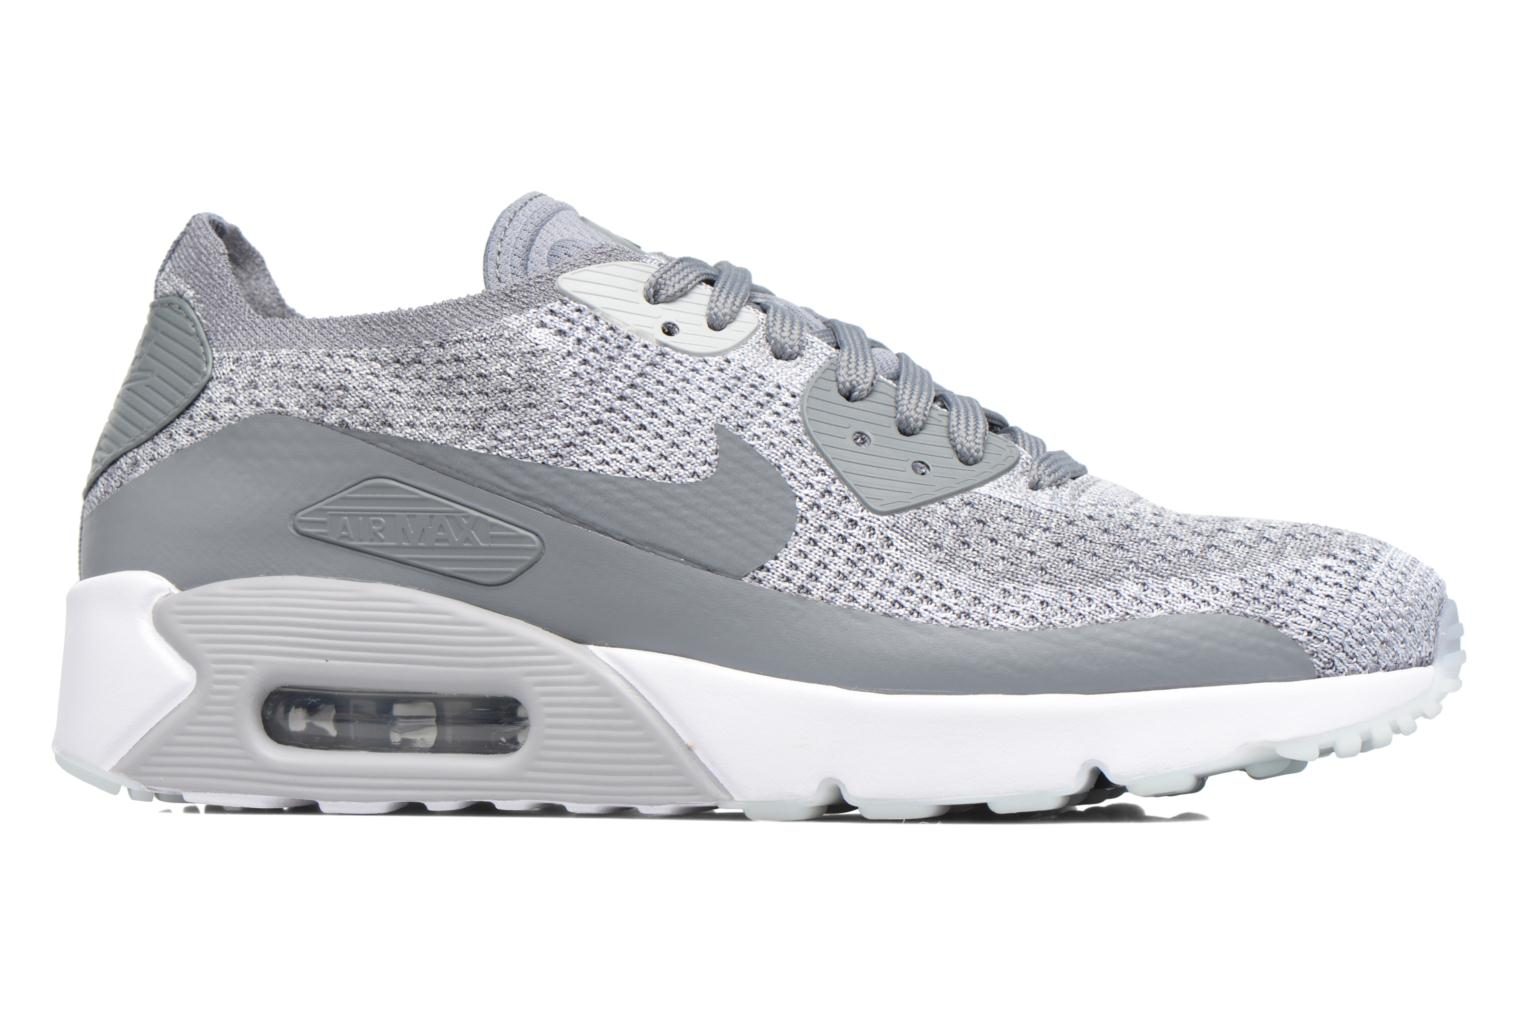 Air Max 90 Ultra 2.0 Flyknit PURE PLATINUM/COOL GREY-WHITE-WOLF GREY